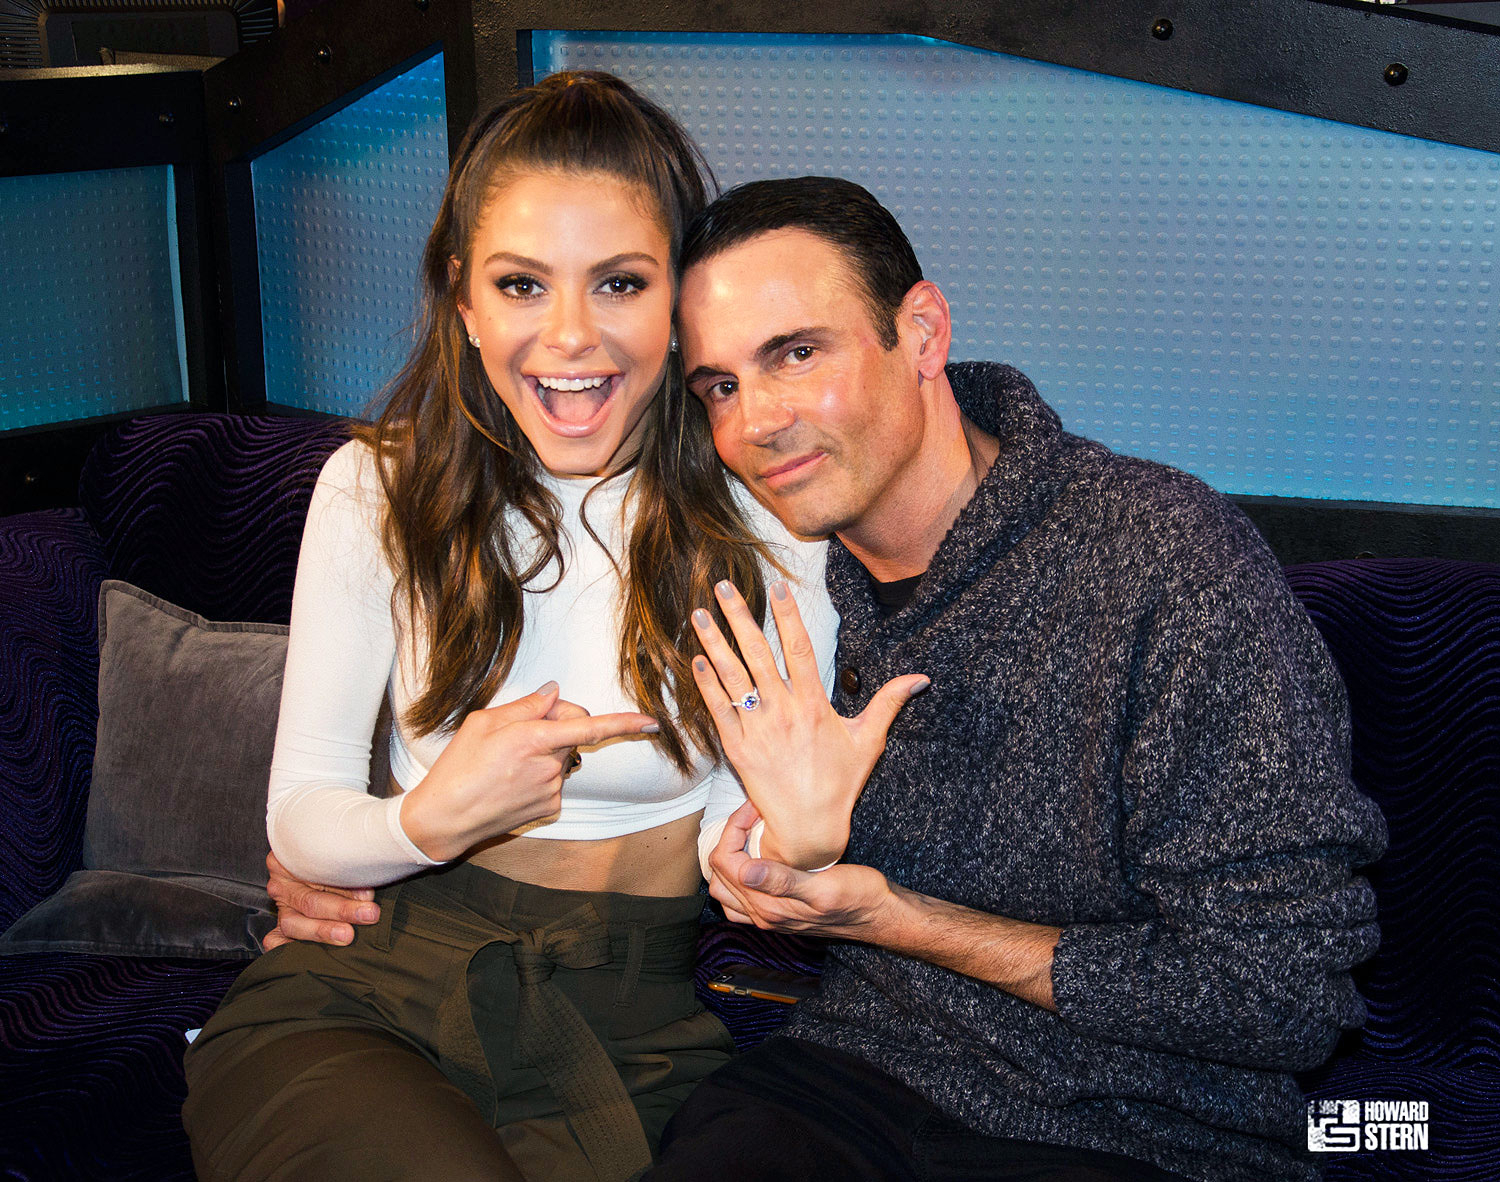 Maria Menounos Marries Kevin Undergaro on NYE in Times Square